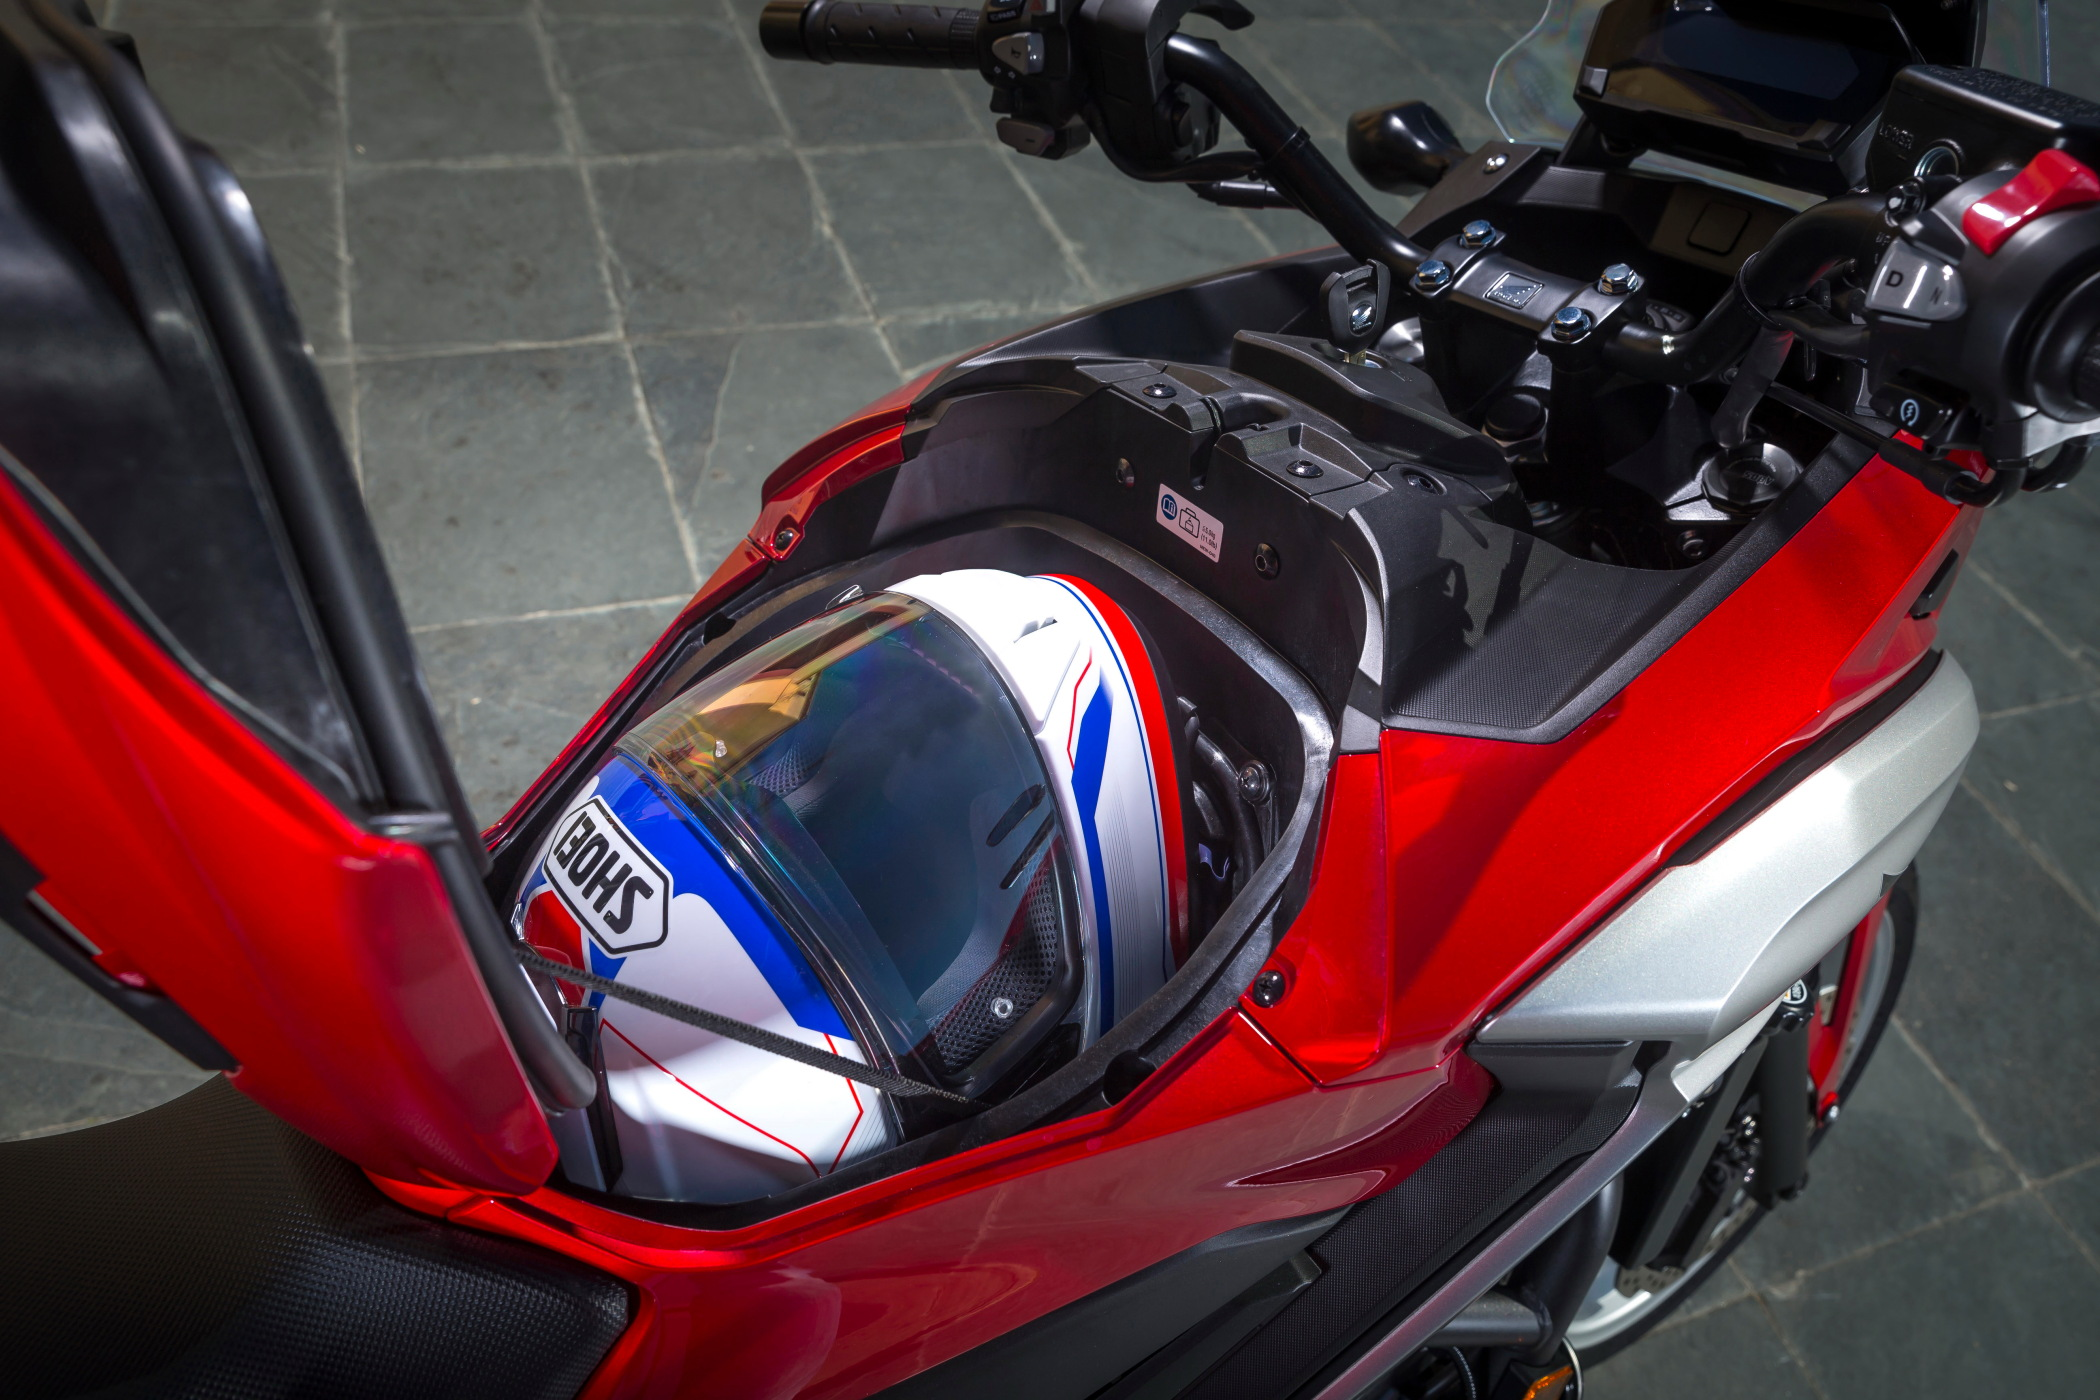 2016 Honda NC750 test | Superbike Magazine